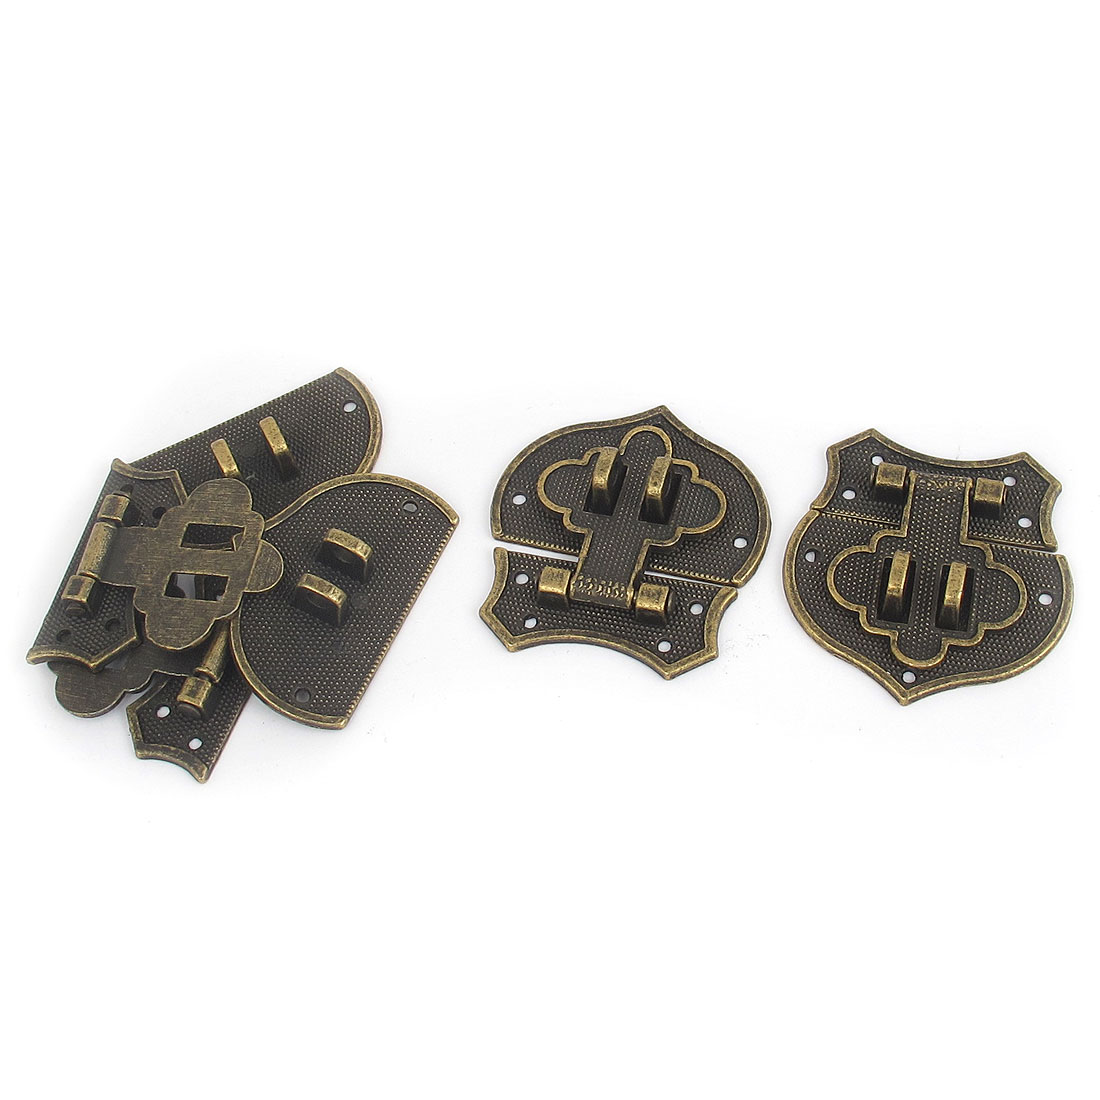 4pcs Bronze Tone Metal Antique Style Suitcase Jewelry Box Case Hasp Latch Chest Lock Locking Hinge